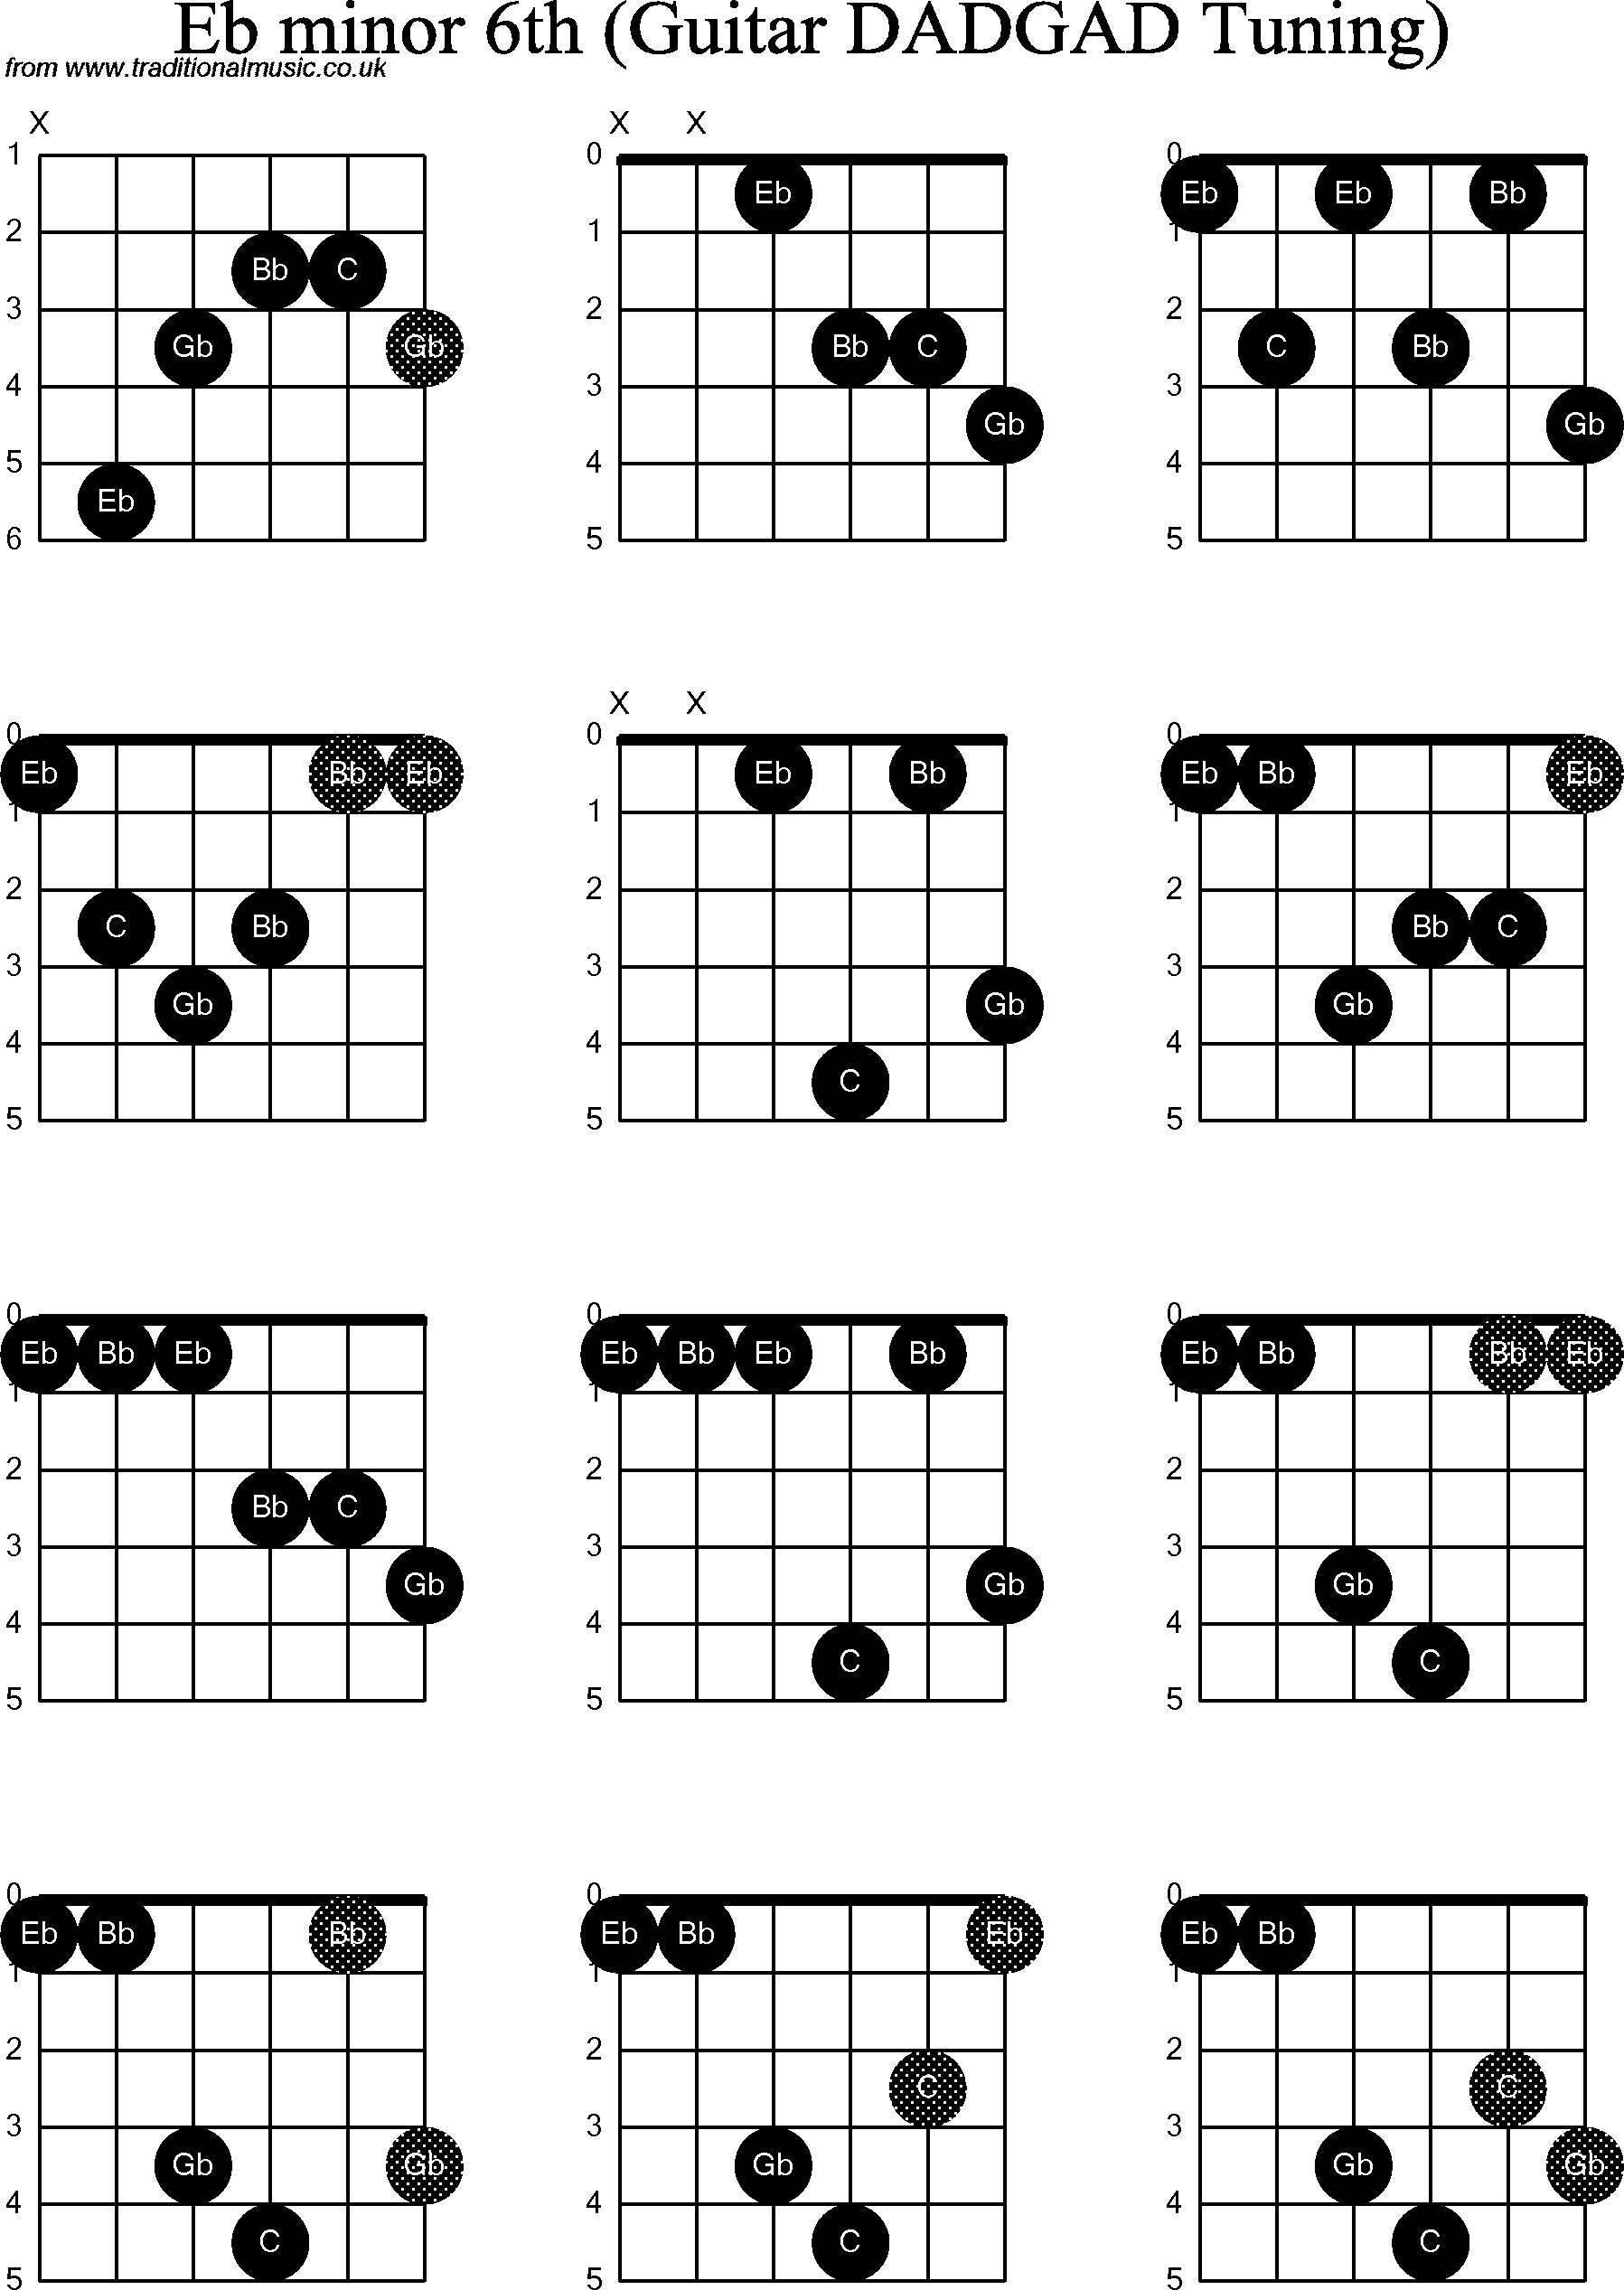 Chord Diagrams D Modal Guitar Dadgad Eb Minor6th